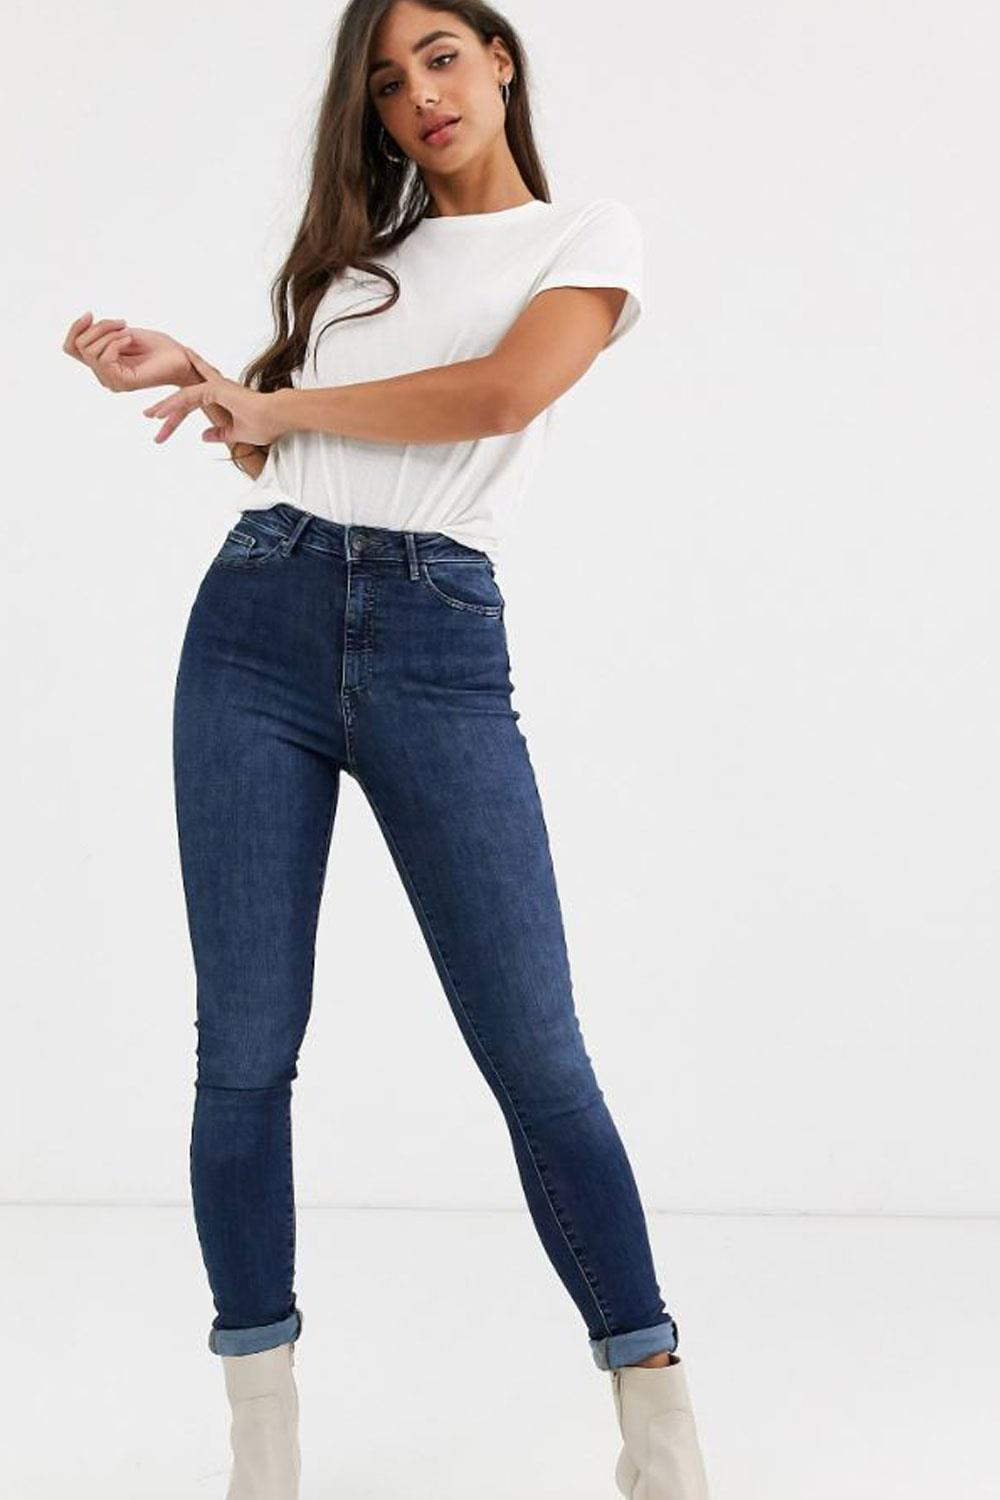 jeans low cost pantalones vaqueros Shape Up de Vero Moda Tall, 37,99€